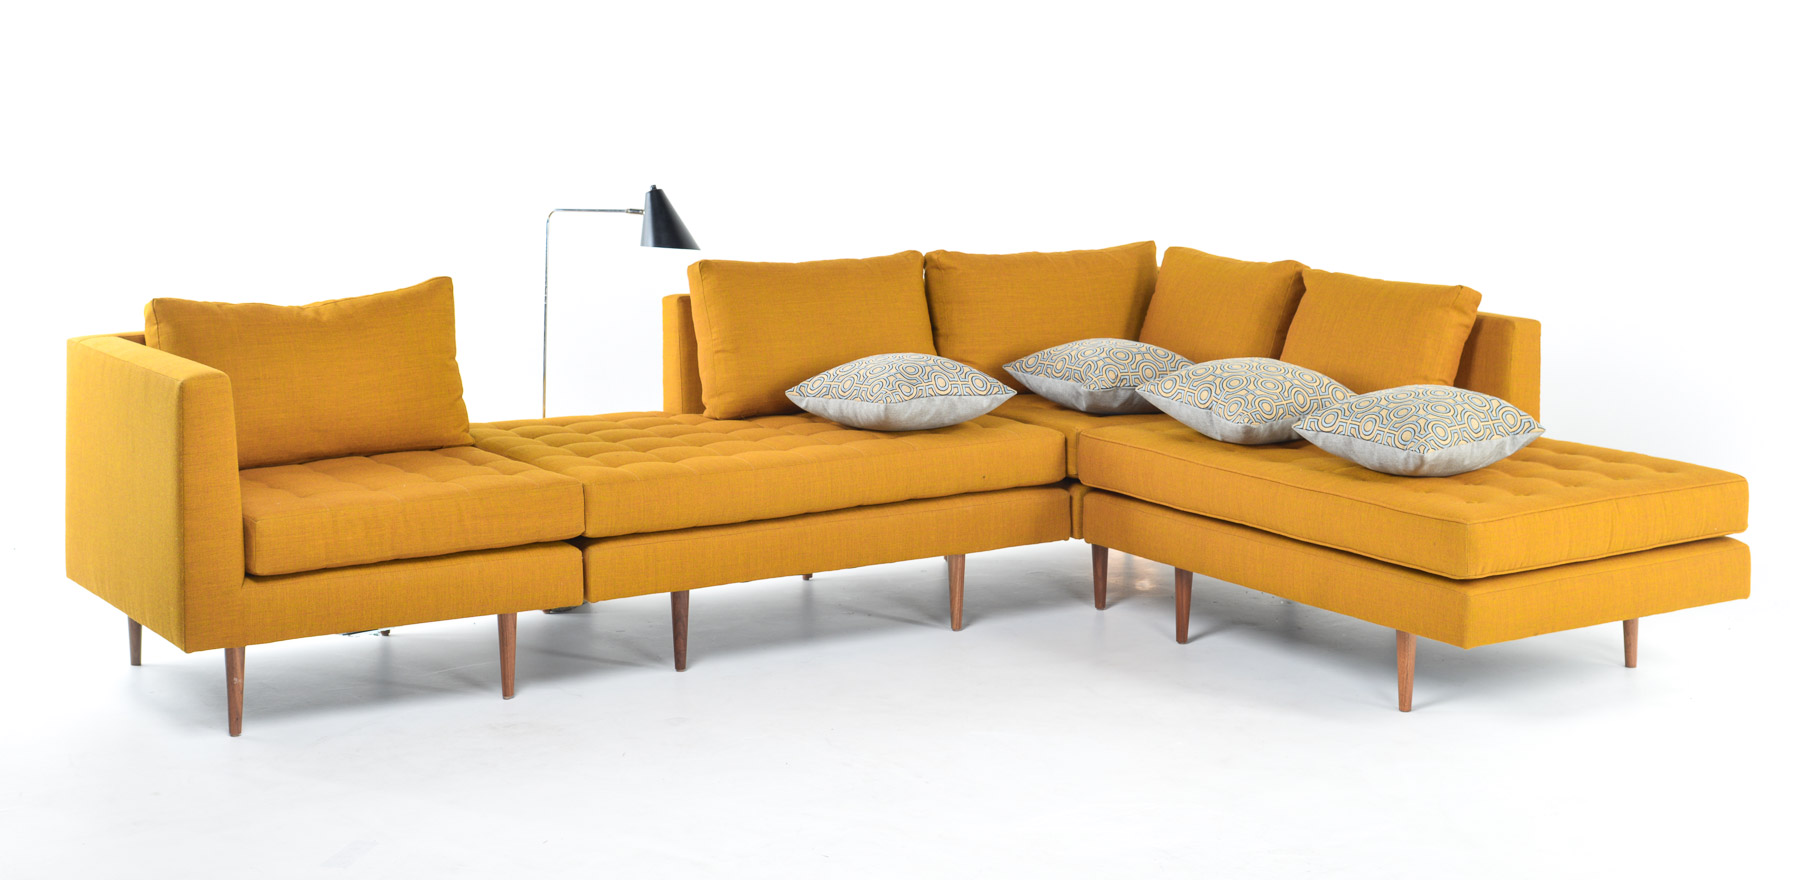 The New Plan Sectional -